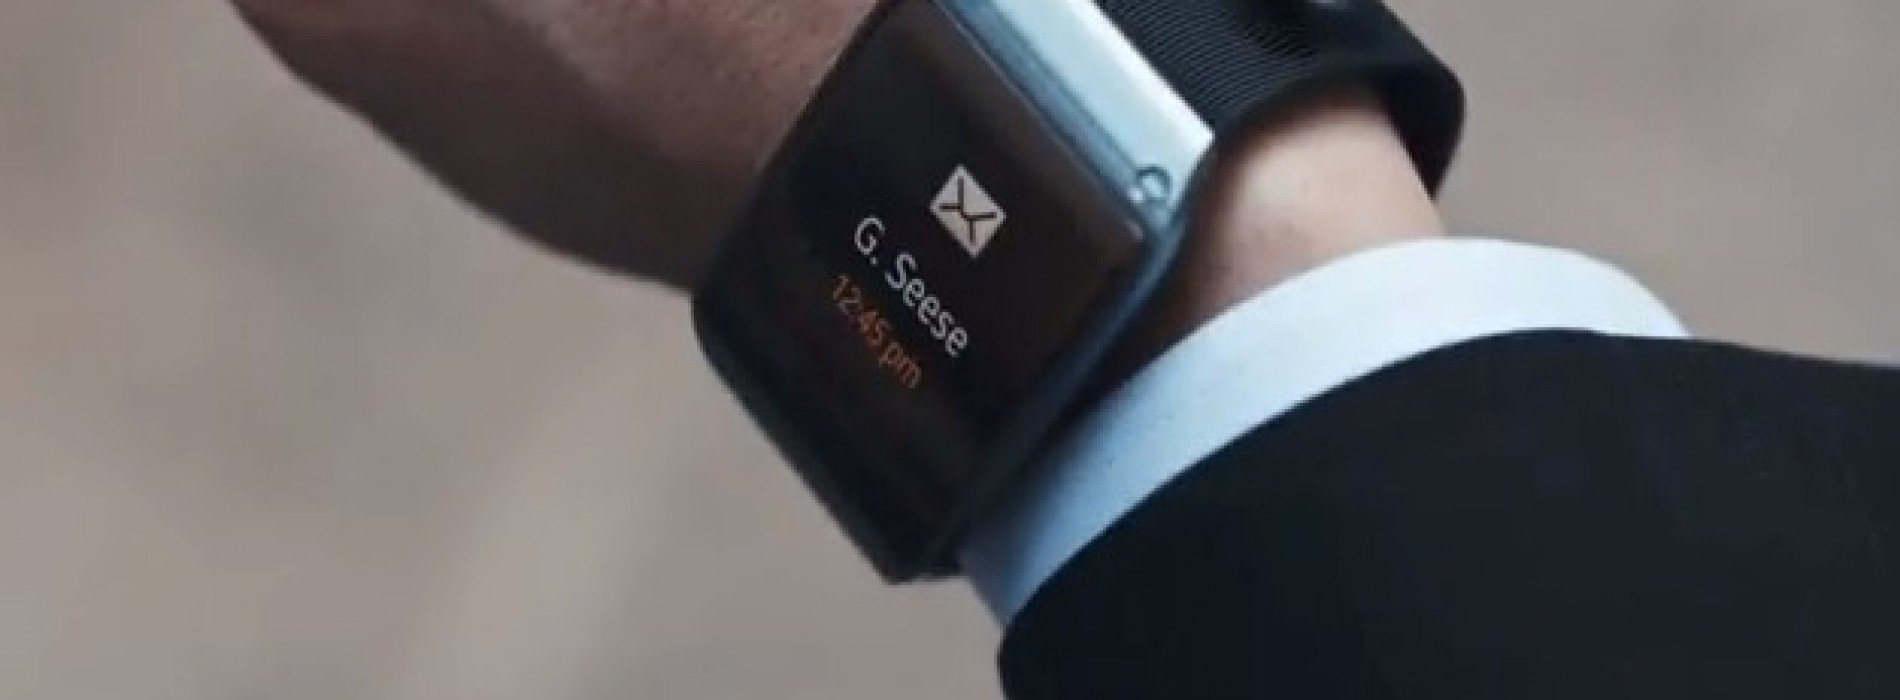 Samsung's Galaxy Note 3, Galaxy Gear ad 'The Developer'